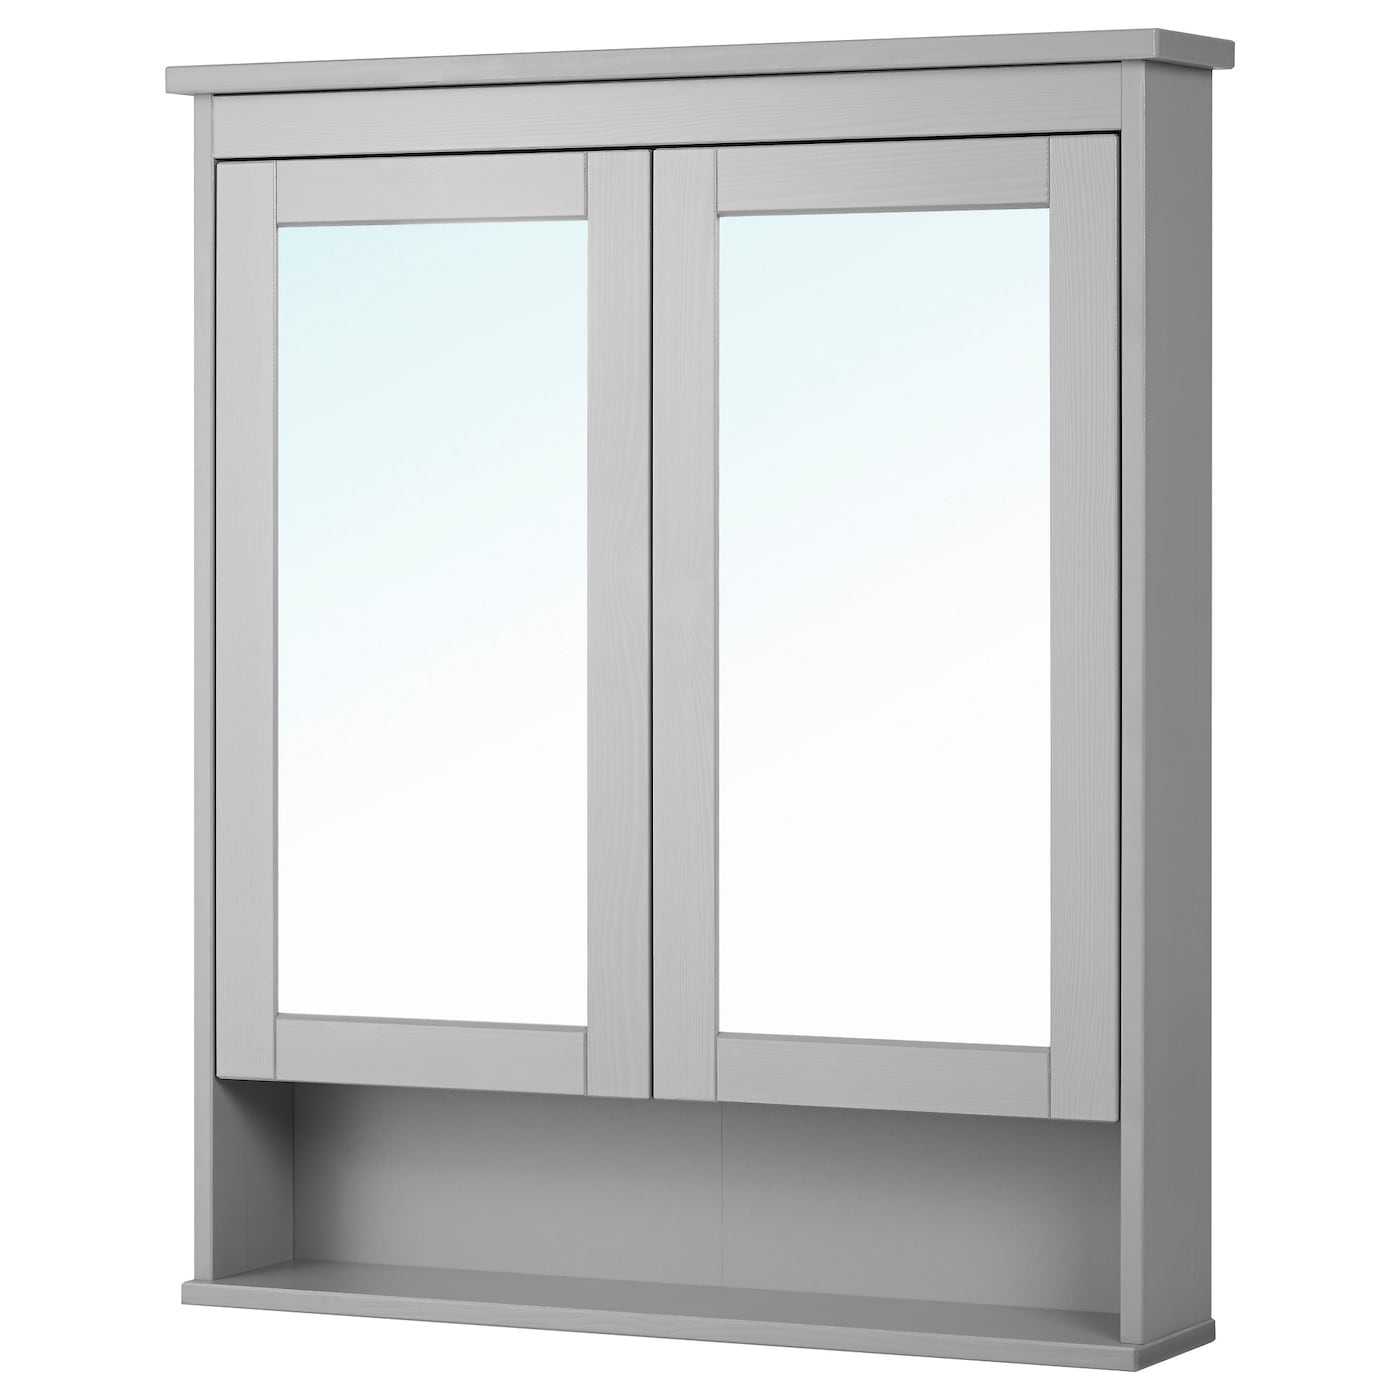 Hemnes mirror cabinet with 2 doors grey 83 x 16 x 98 cm ikea for Beleuchtete spiegel ikea